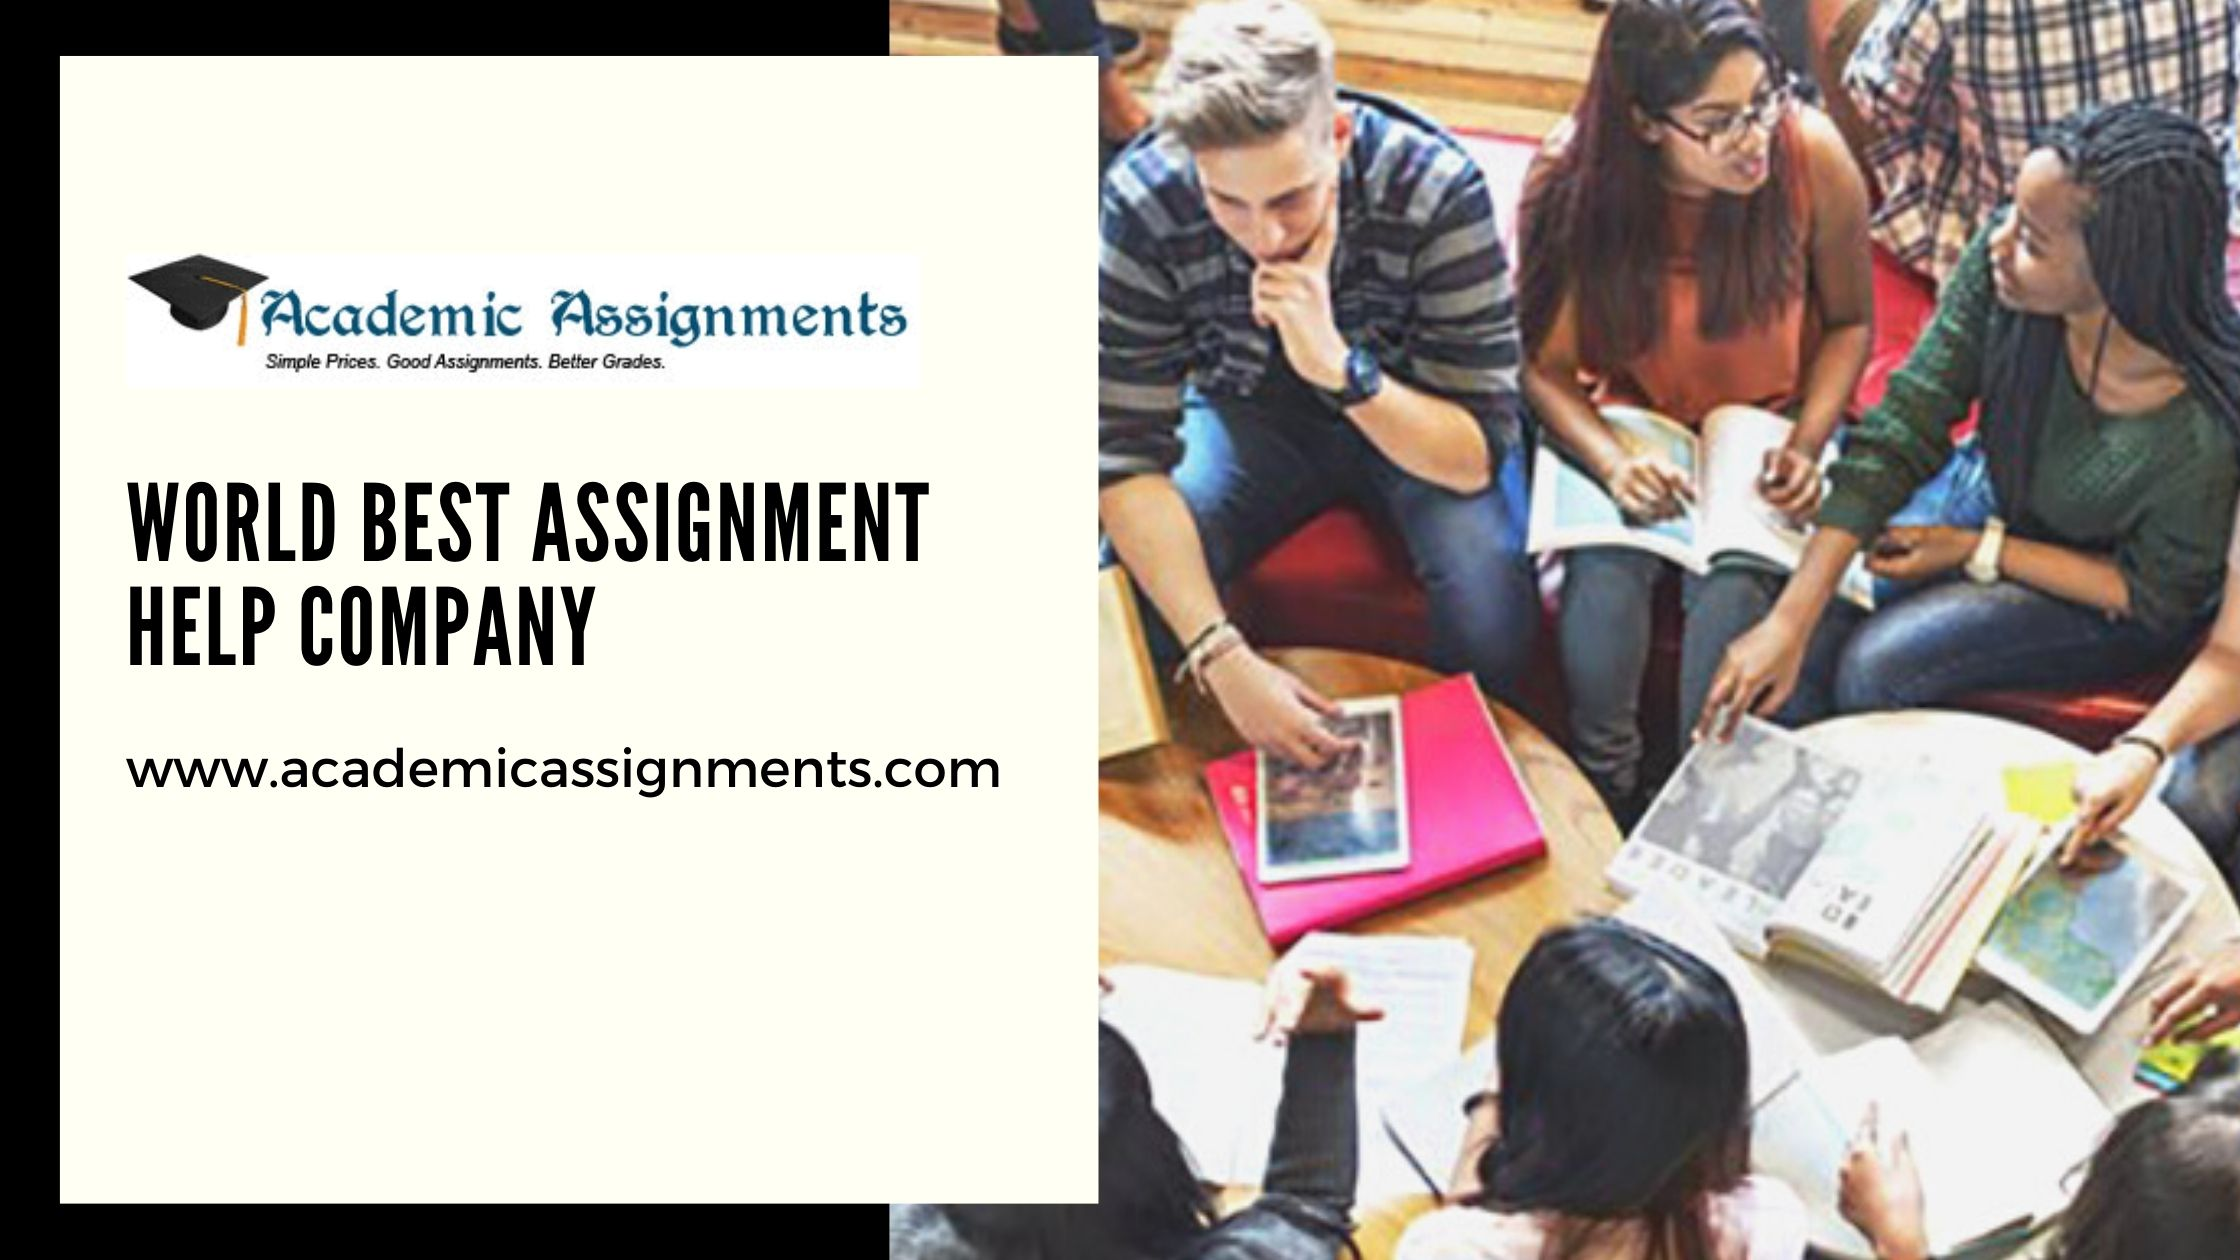 World Best Assignment Help Company